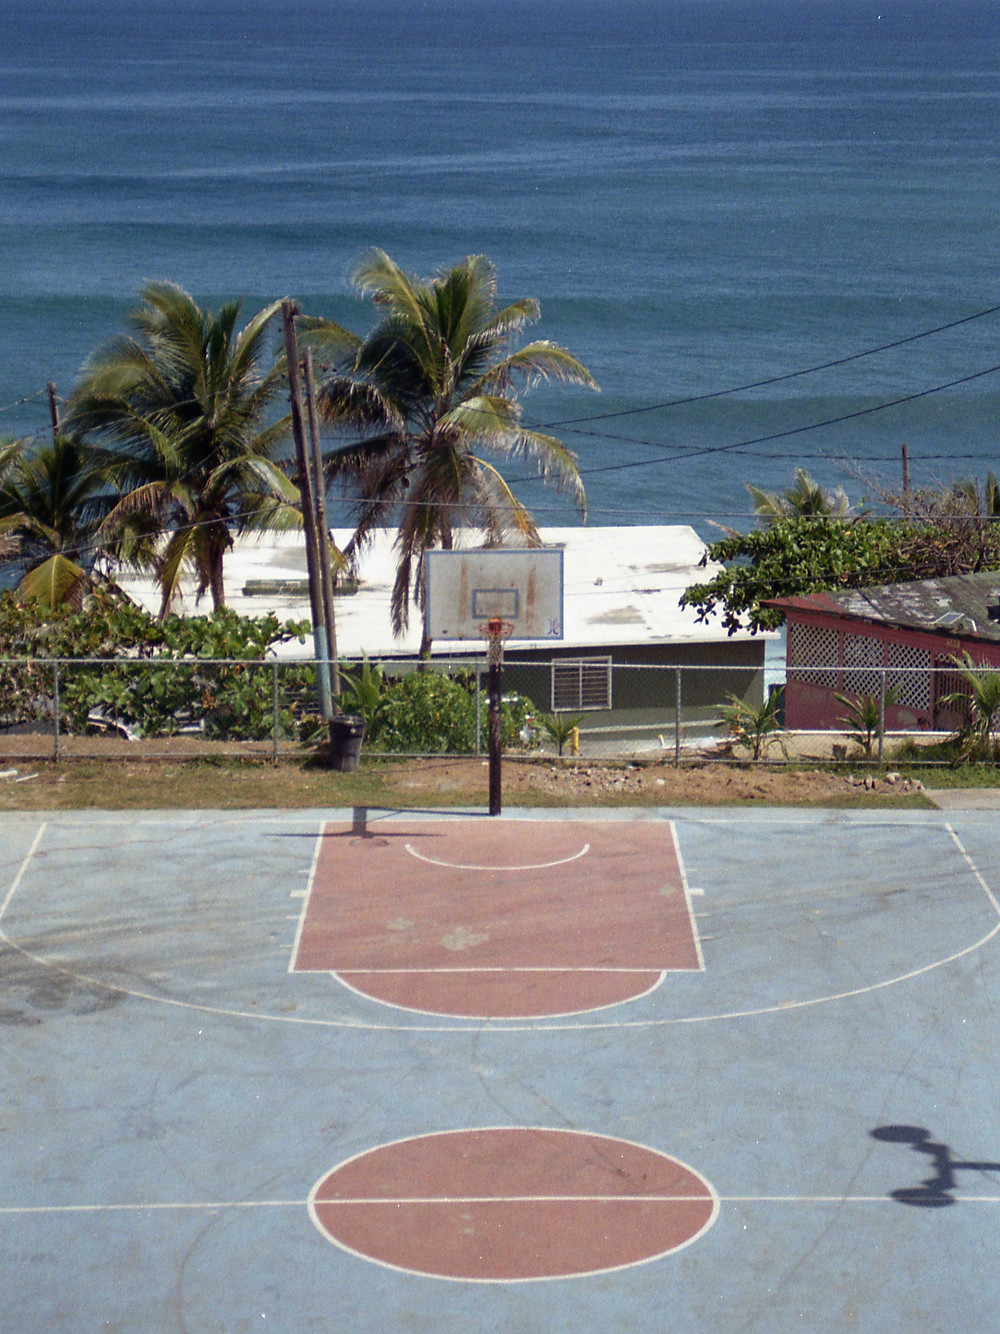 Carmelo Anthony Court in San Juan, Puerto Rico